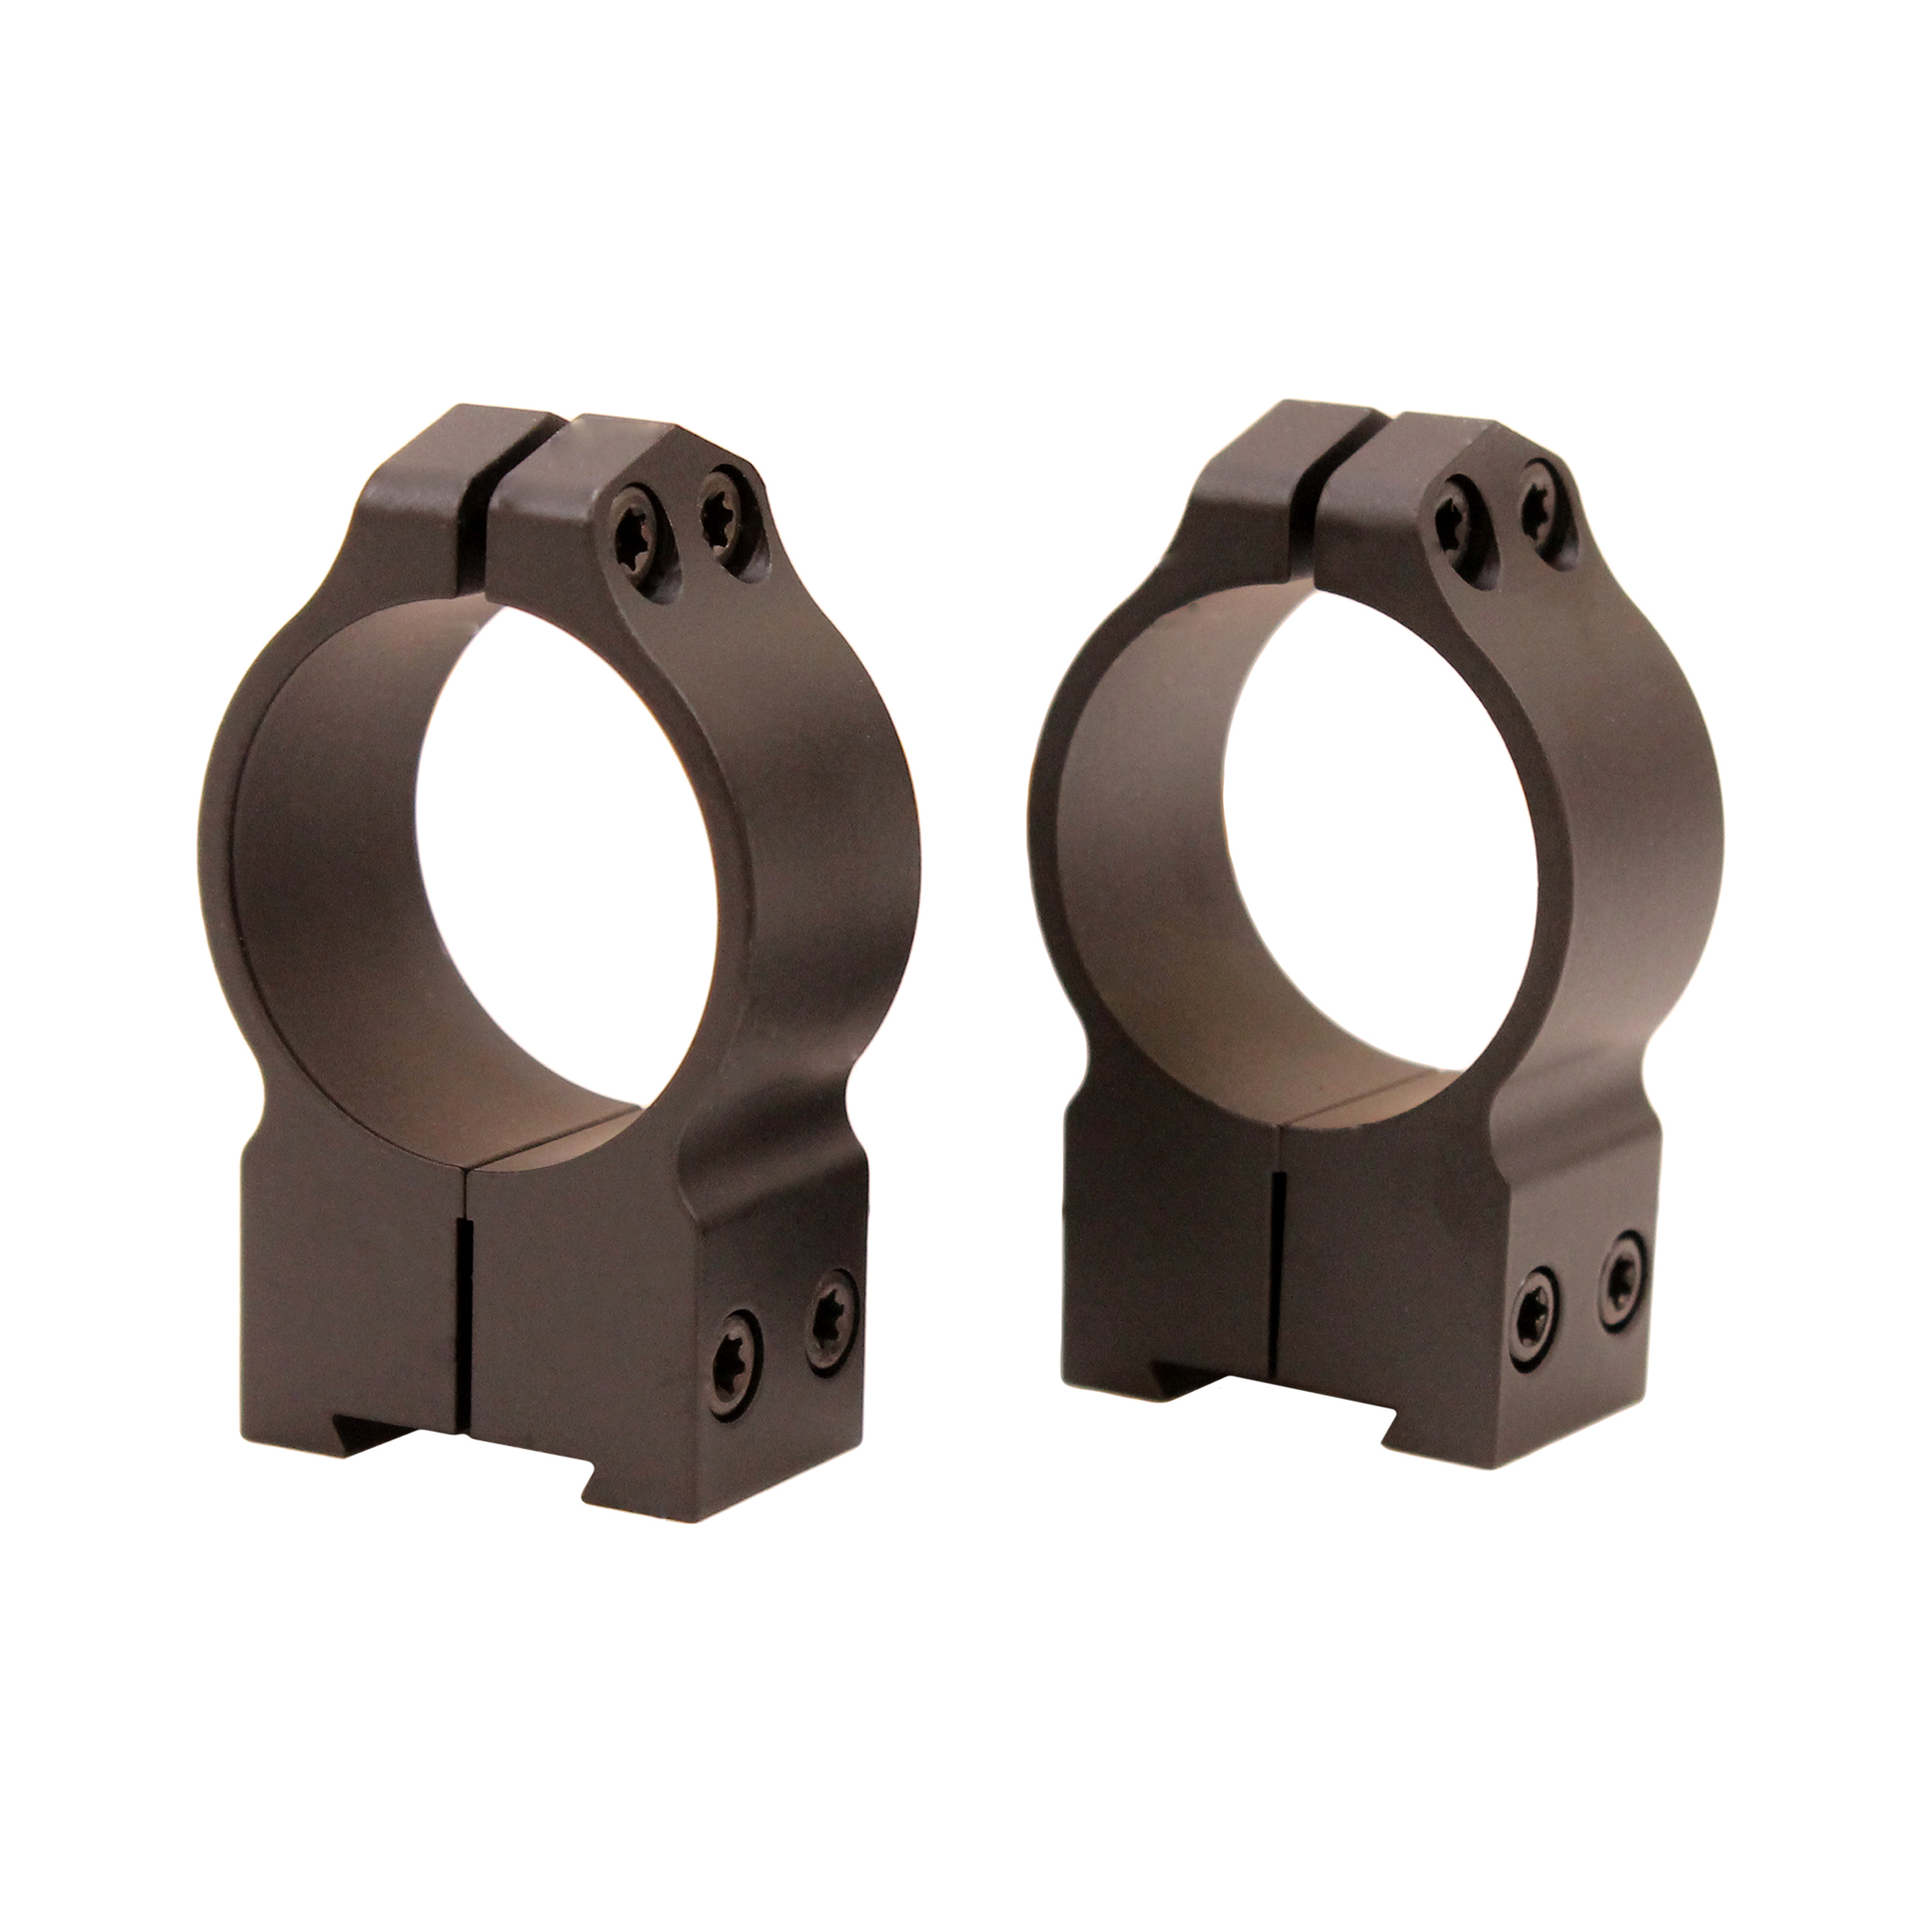 Warne Scope Mounts Permanent Attachable Ring Mounts 30mm, High Height, Tikka T3, Whitetail Hunter, and 595, Matte Black